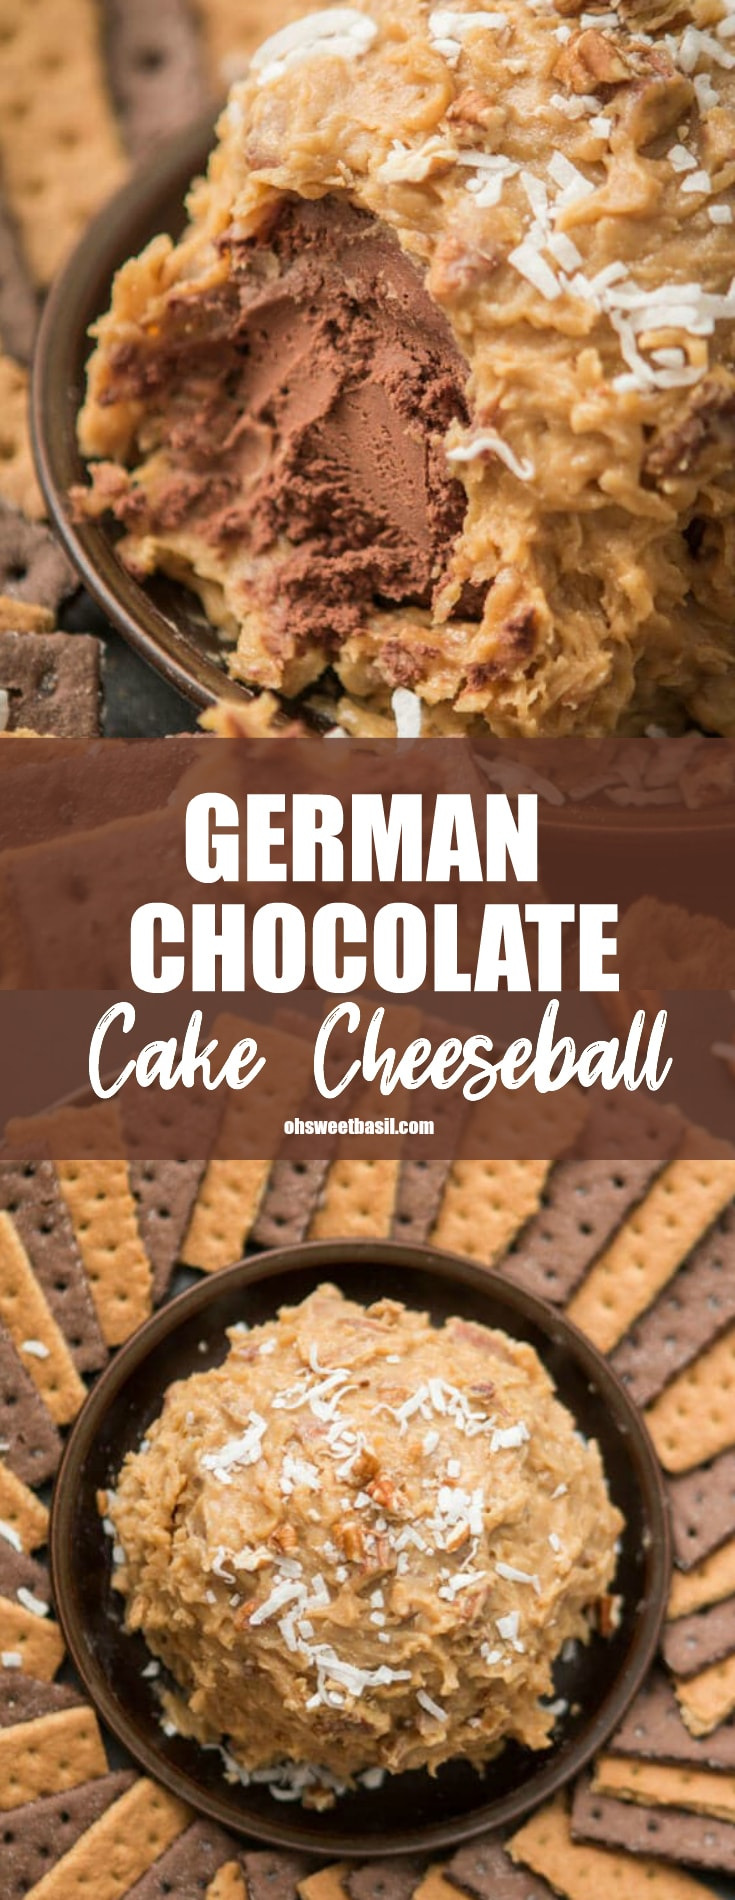 A German Chocolate Cake Cheeseball with shredded coconut on top